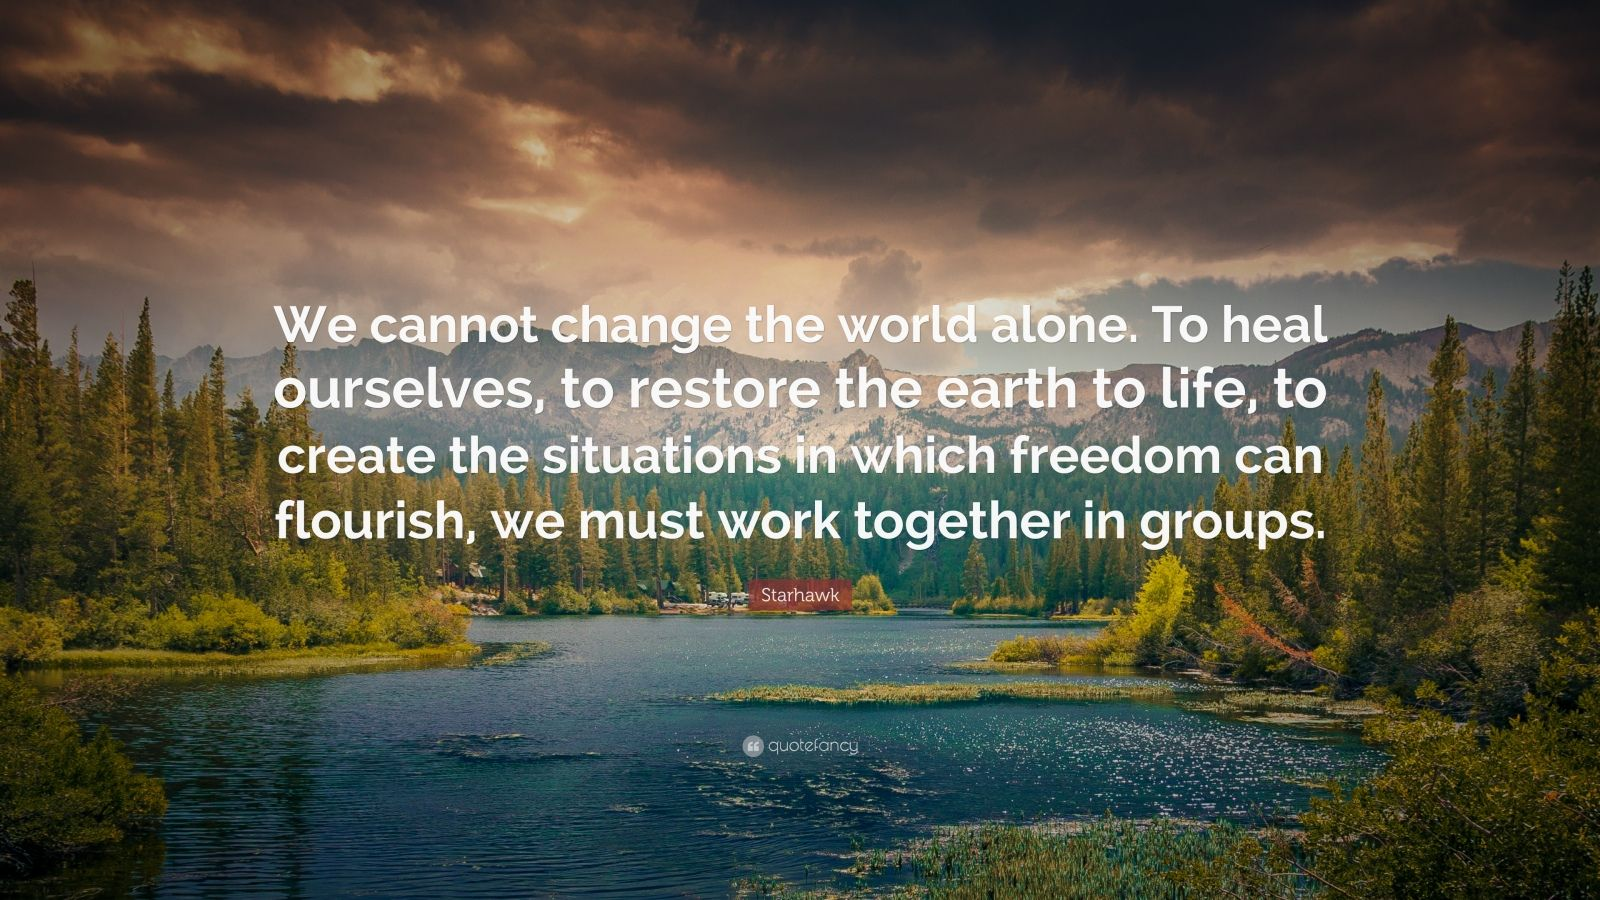 "Starhawk Quote: ""We cannot change the world alone. To heal ourselves, to restore the earth to life, to create the situations in which freedom can flourish, we must work together in groups."""